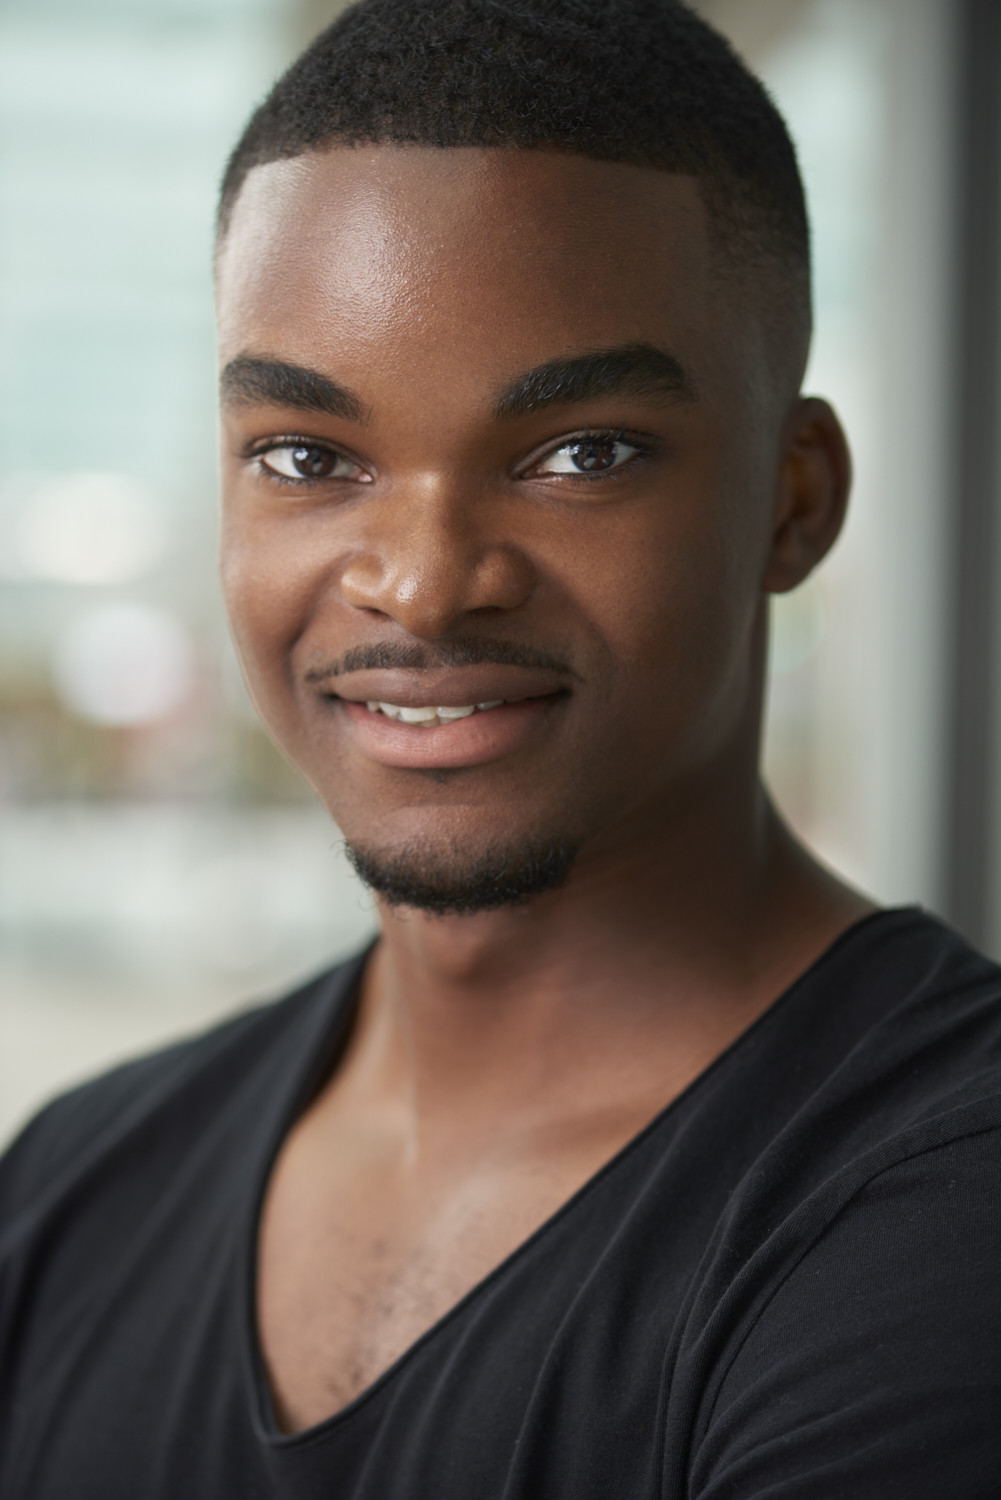 Headshot session on location with Michael-1